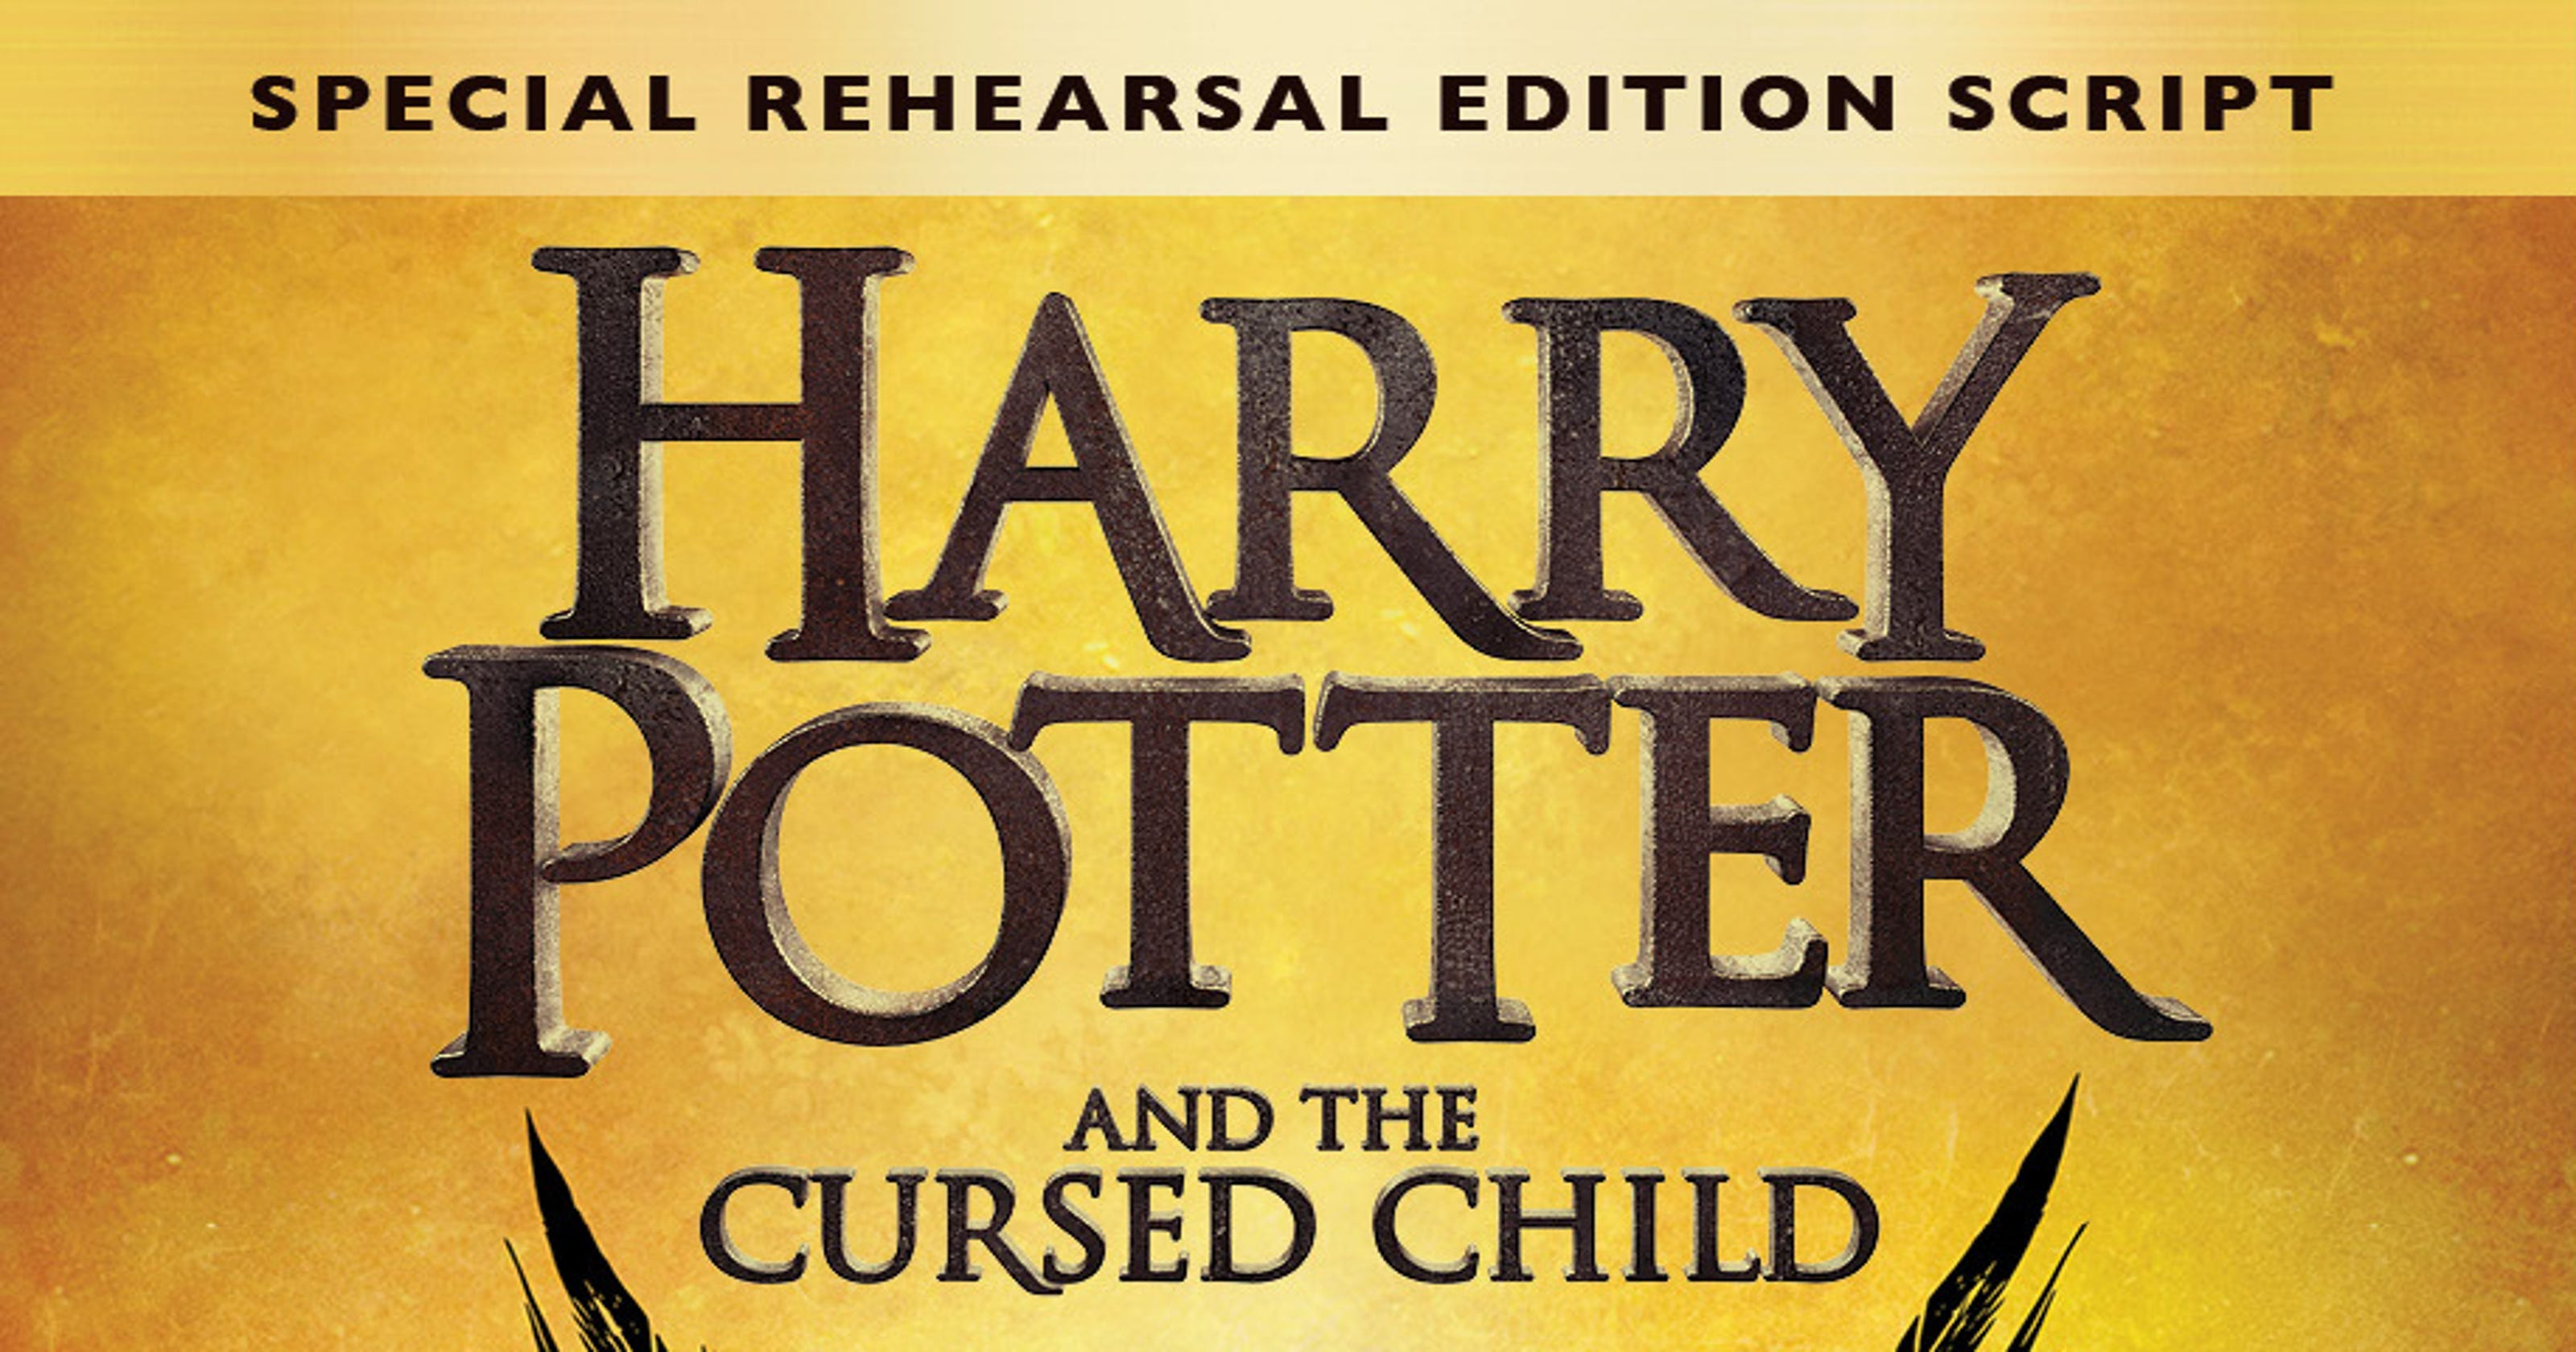 Review: 'Cursed Child' script-book is almost 'Harry Potter